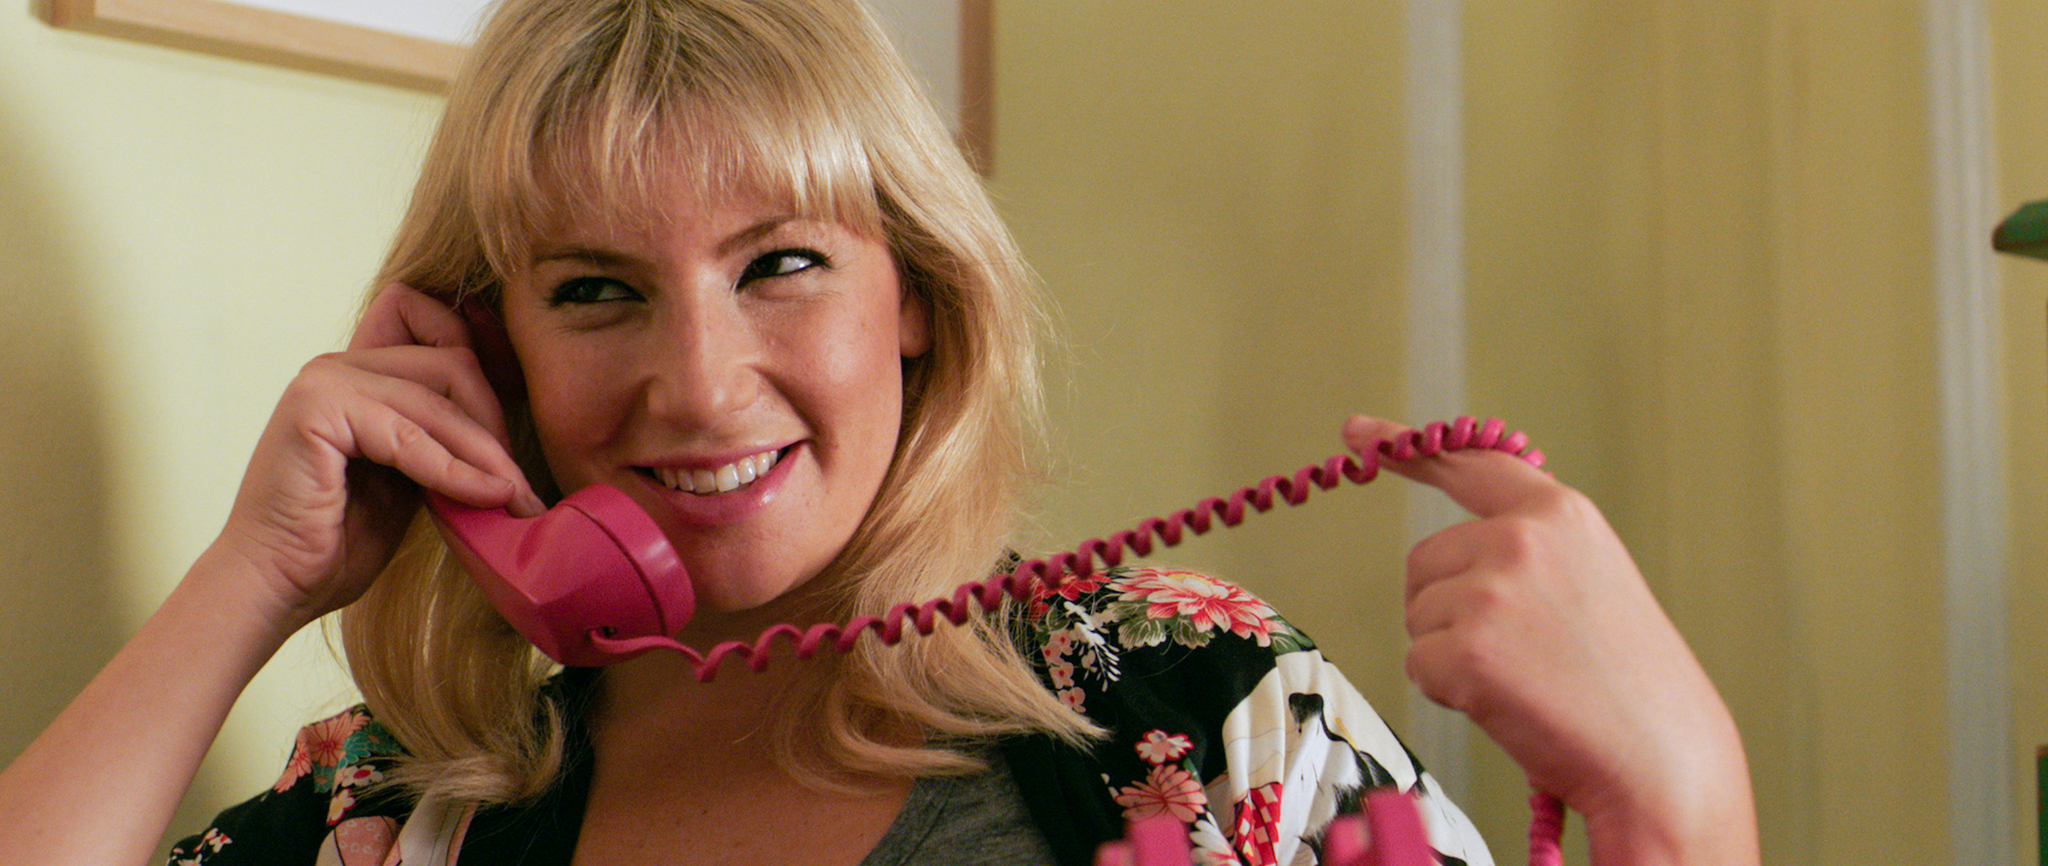 Ari Graynor in For a Good Time, Call... (2012)